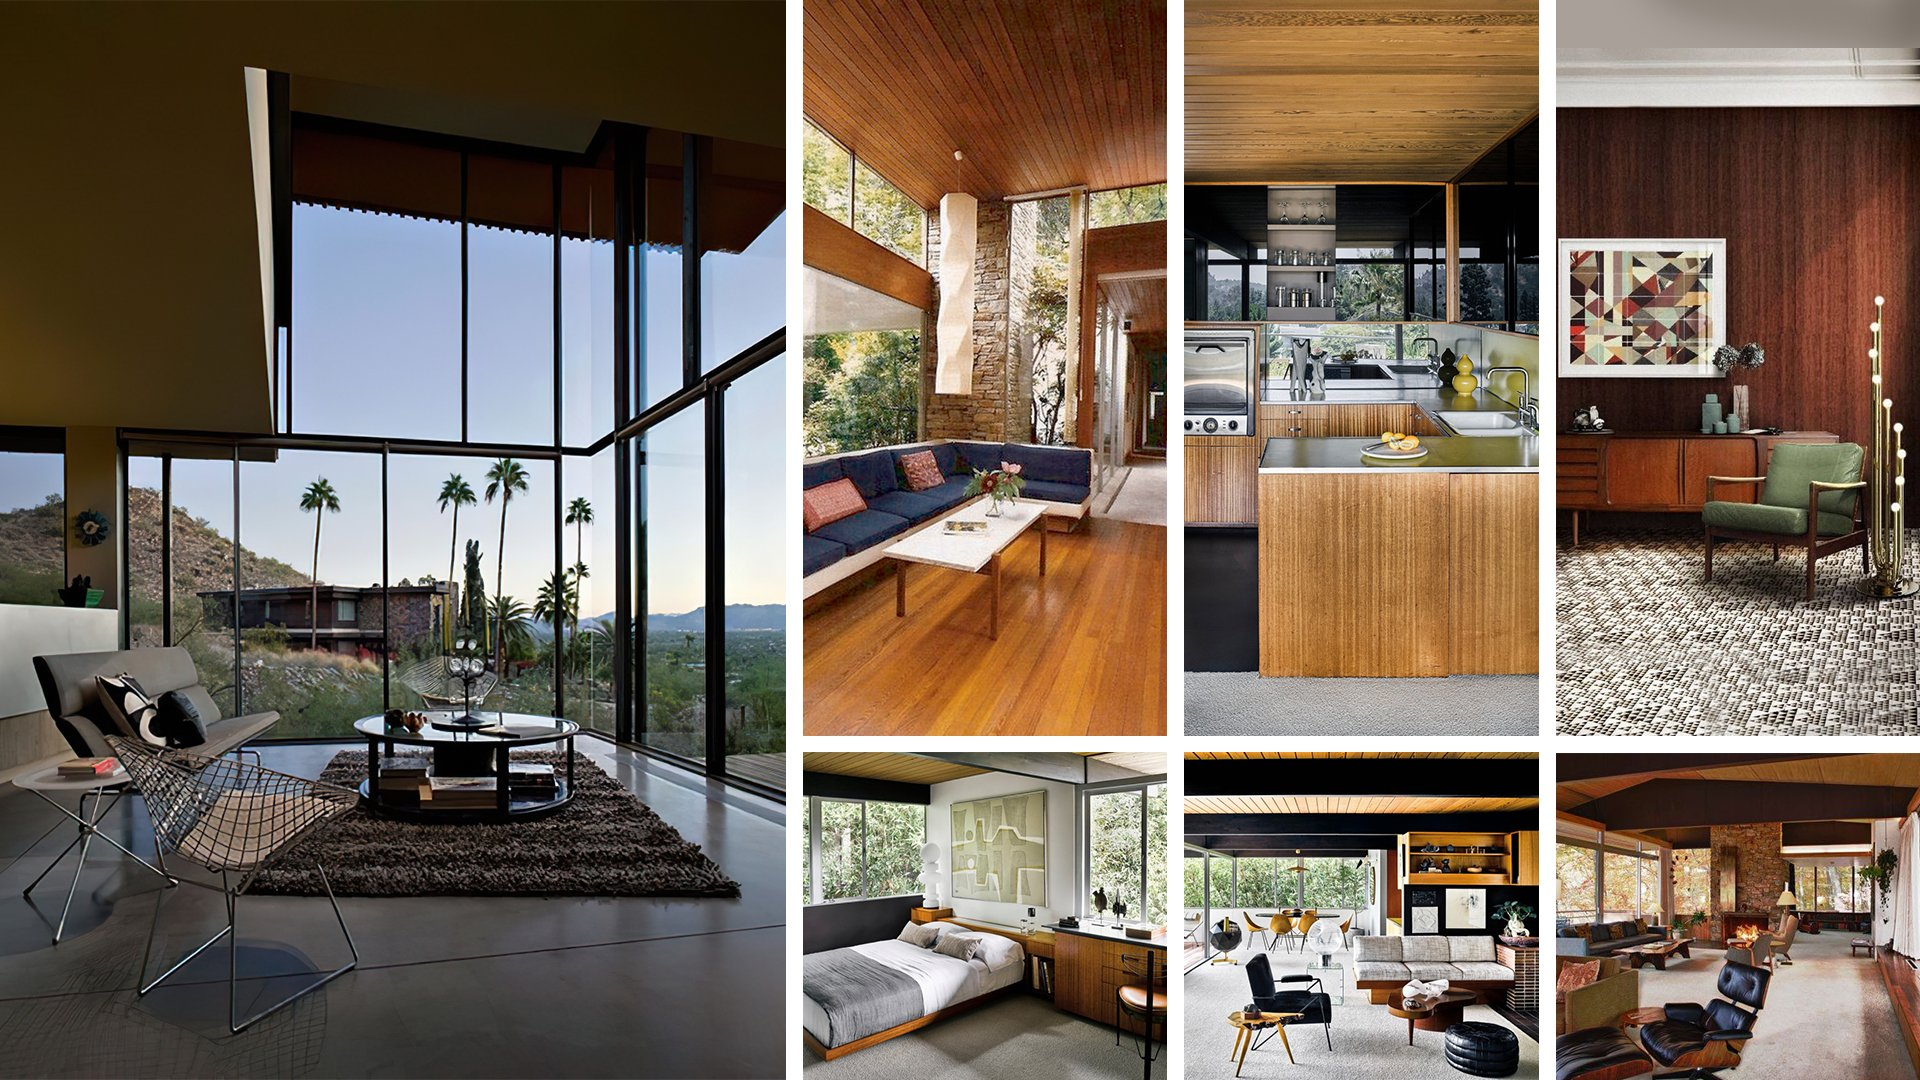 Interior Design References for Architectural Concept Renderings